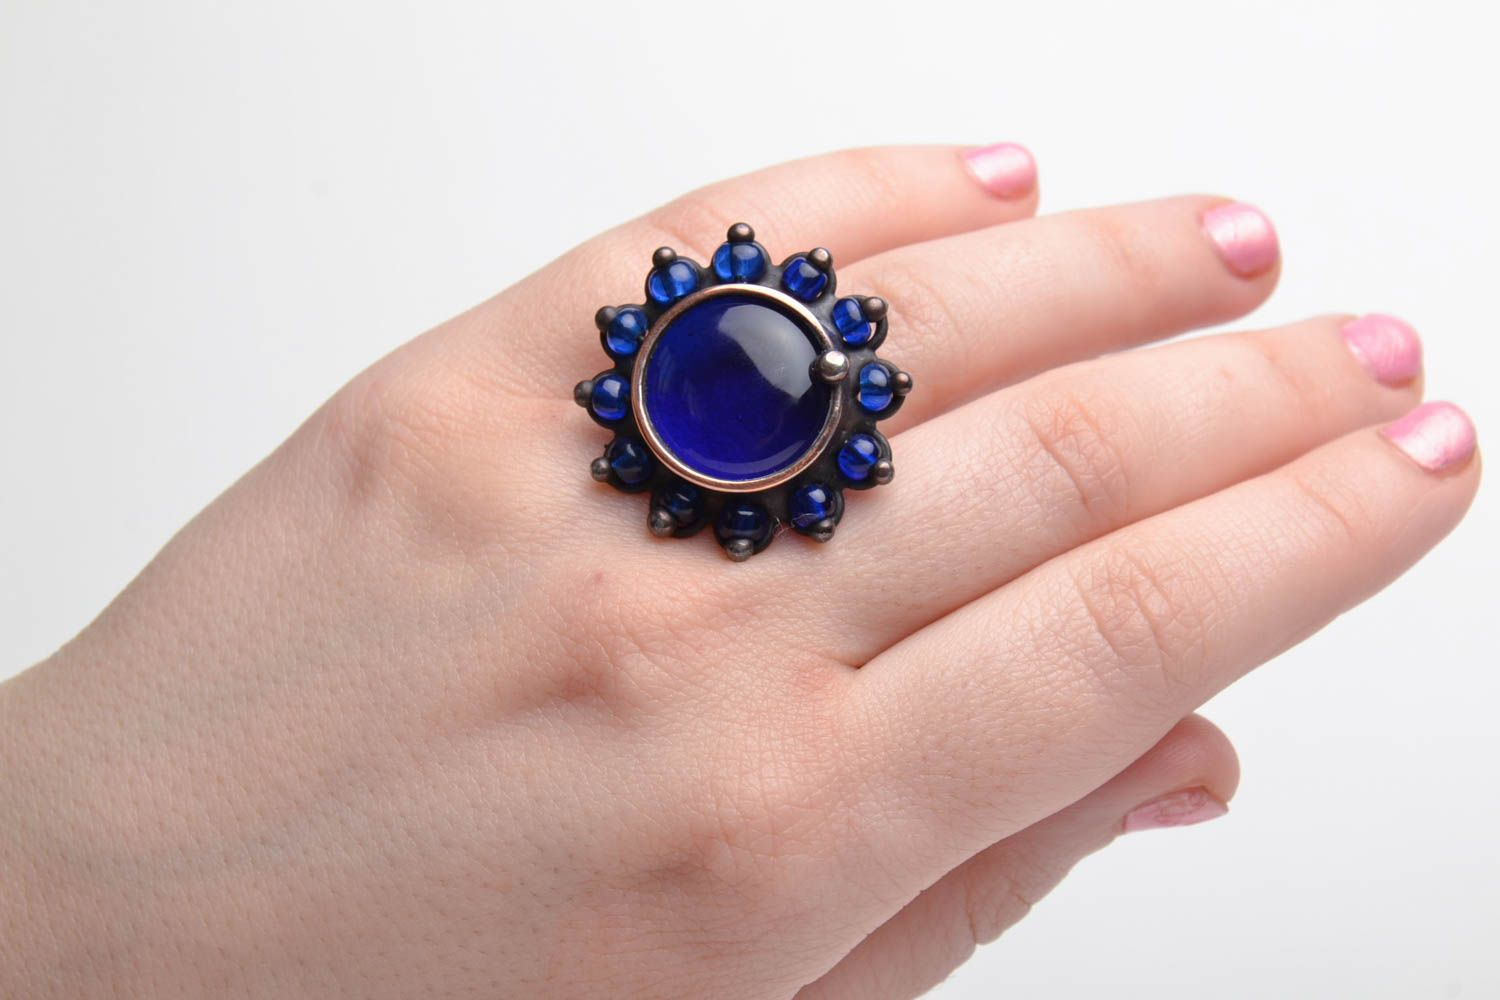 Round stained glass ring photo 5